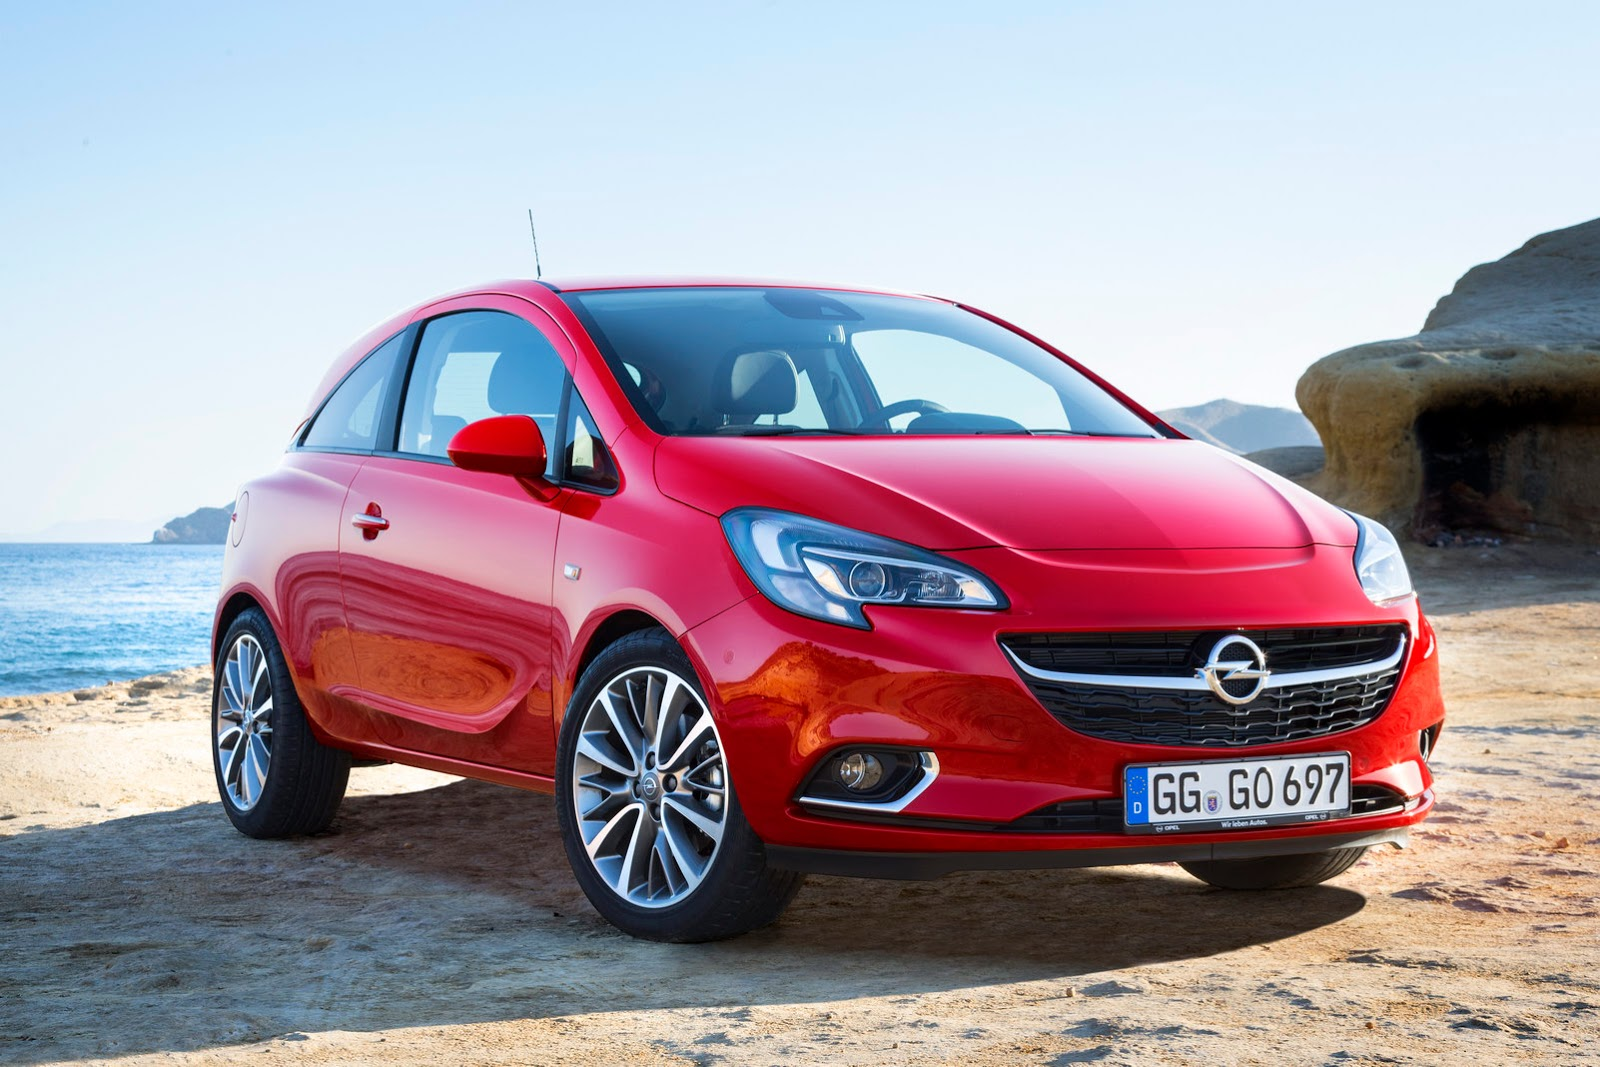 New Opel Corsa Design Explained By Mark Adams Autoevolution